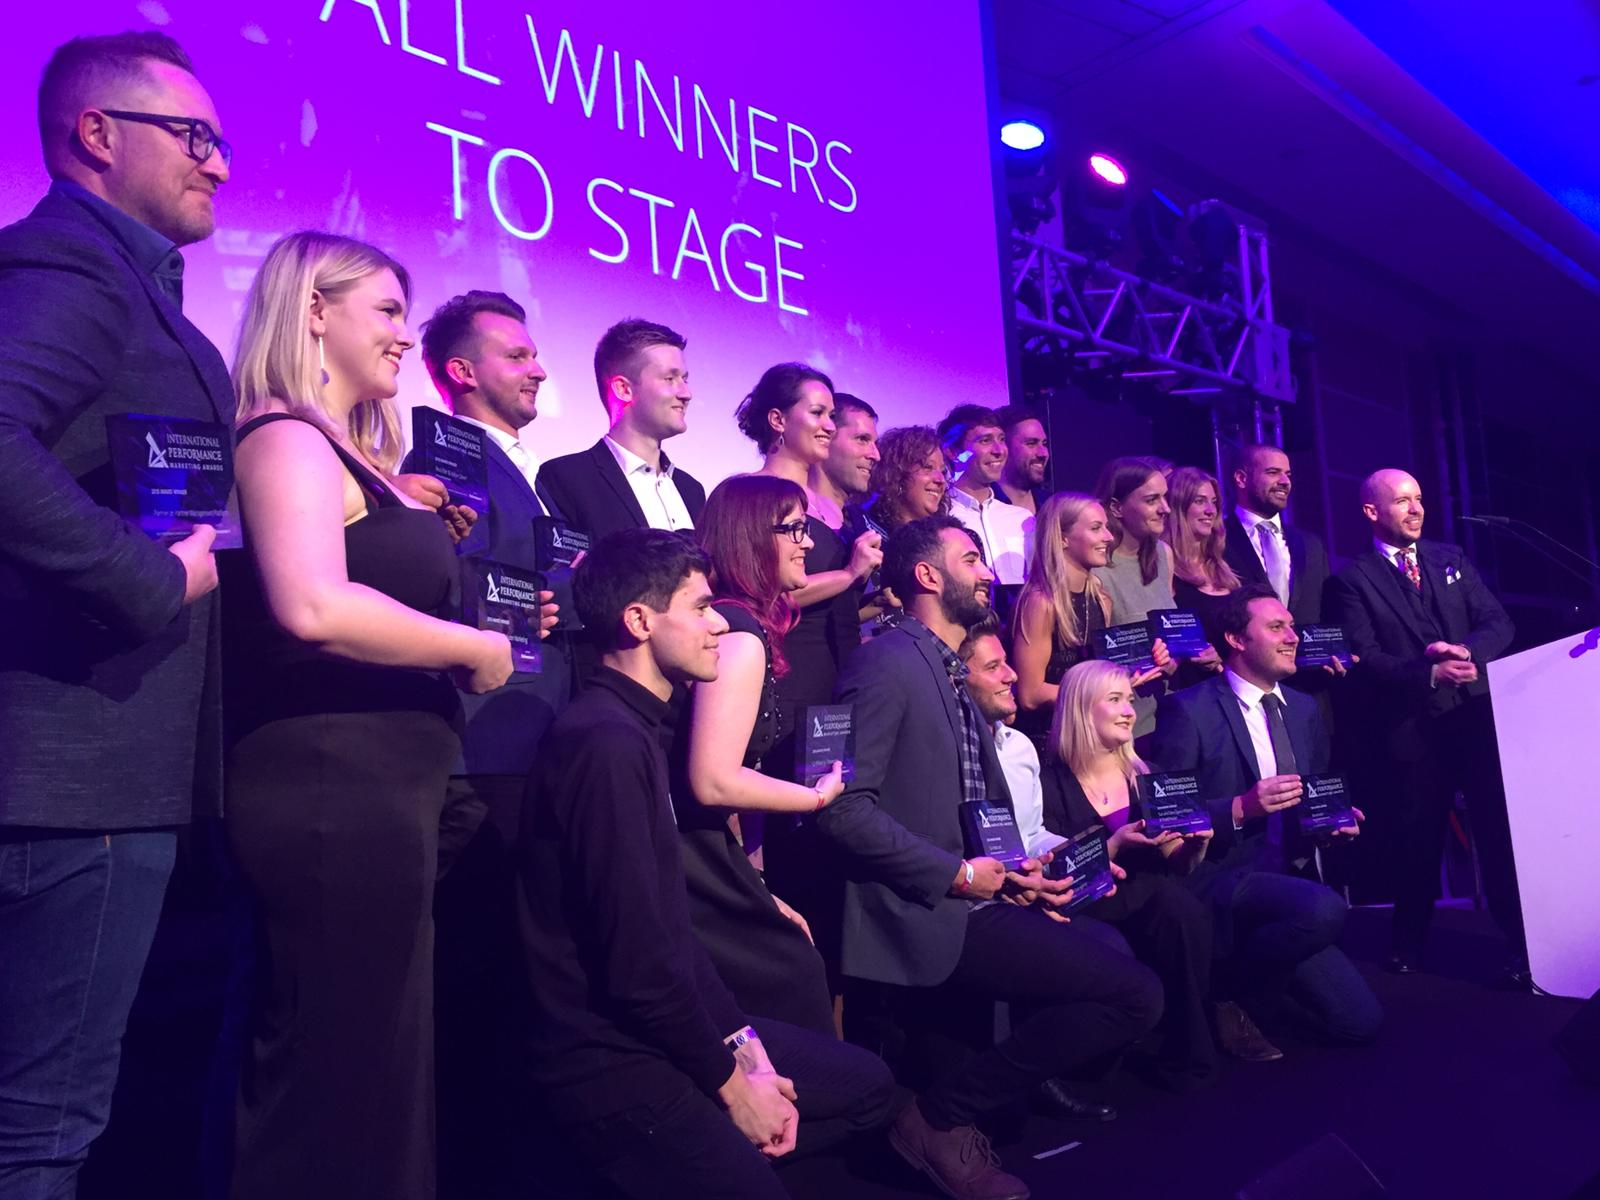 CJ Affiliate took home three IPMAs, including the coveted Industry Network of Choice